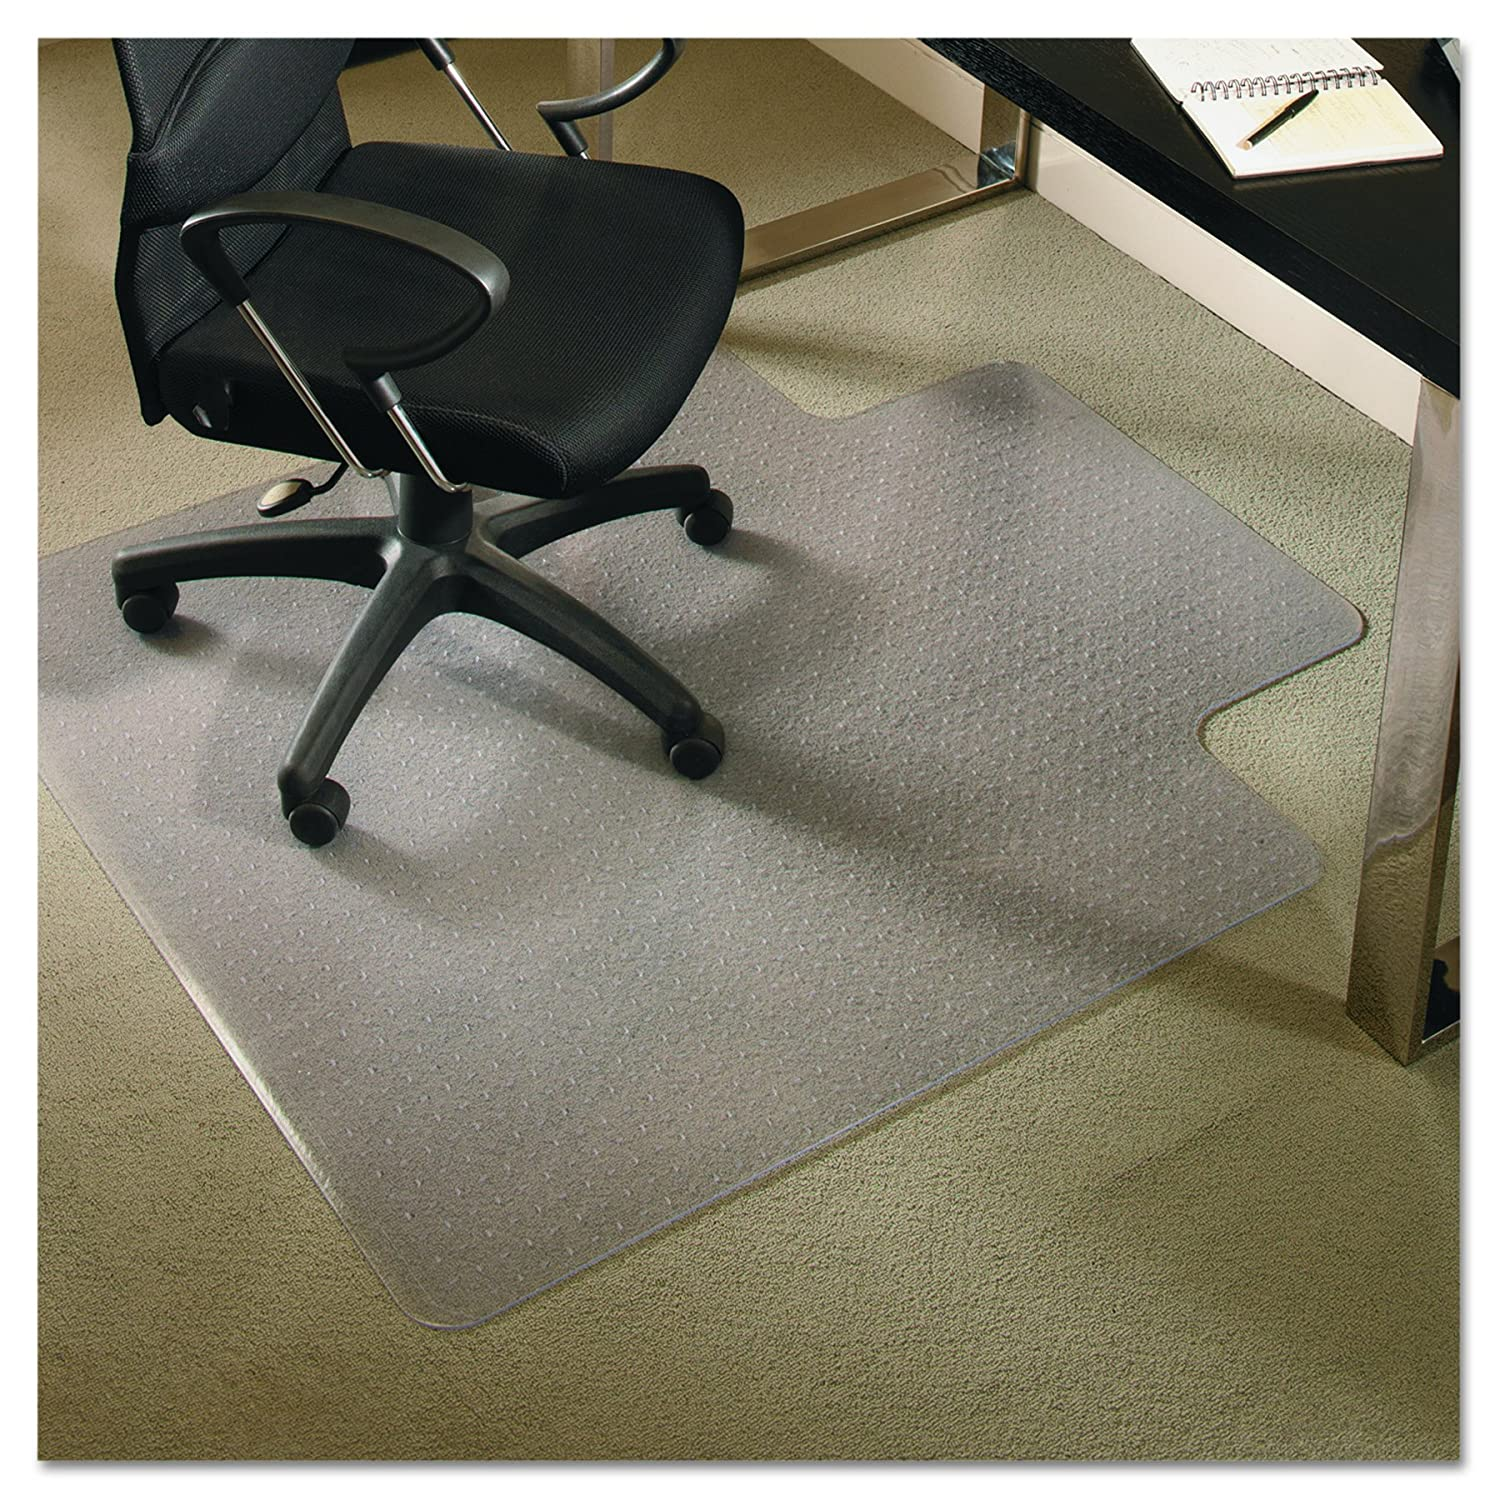 amazon com es robbins 122073 everlife chair mats for medium pile